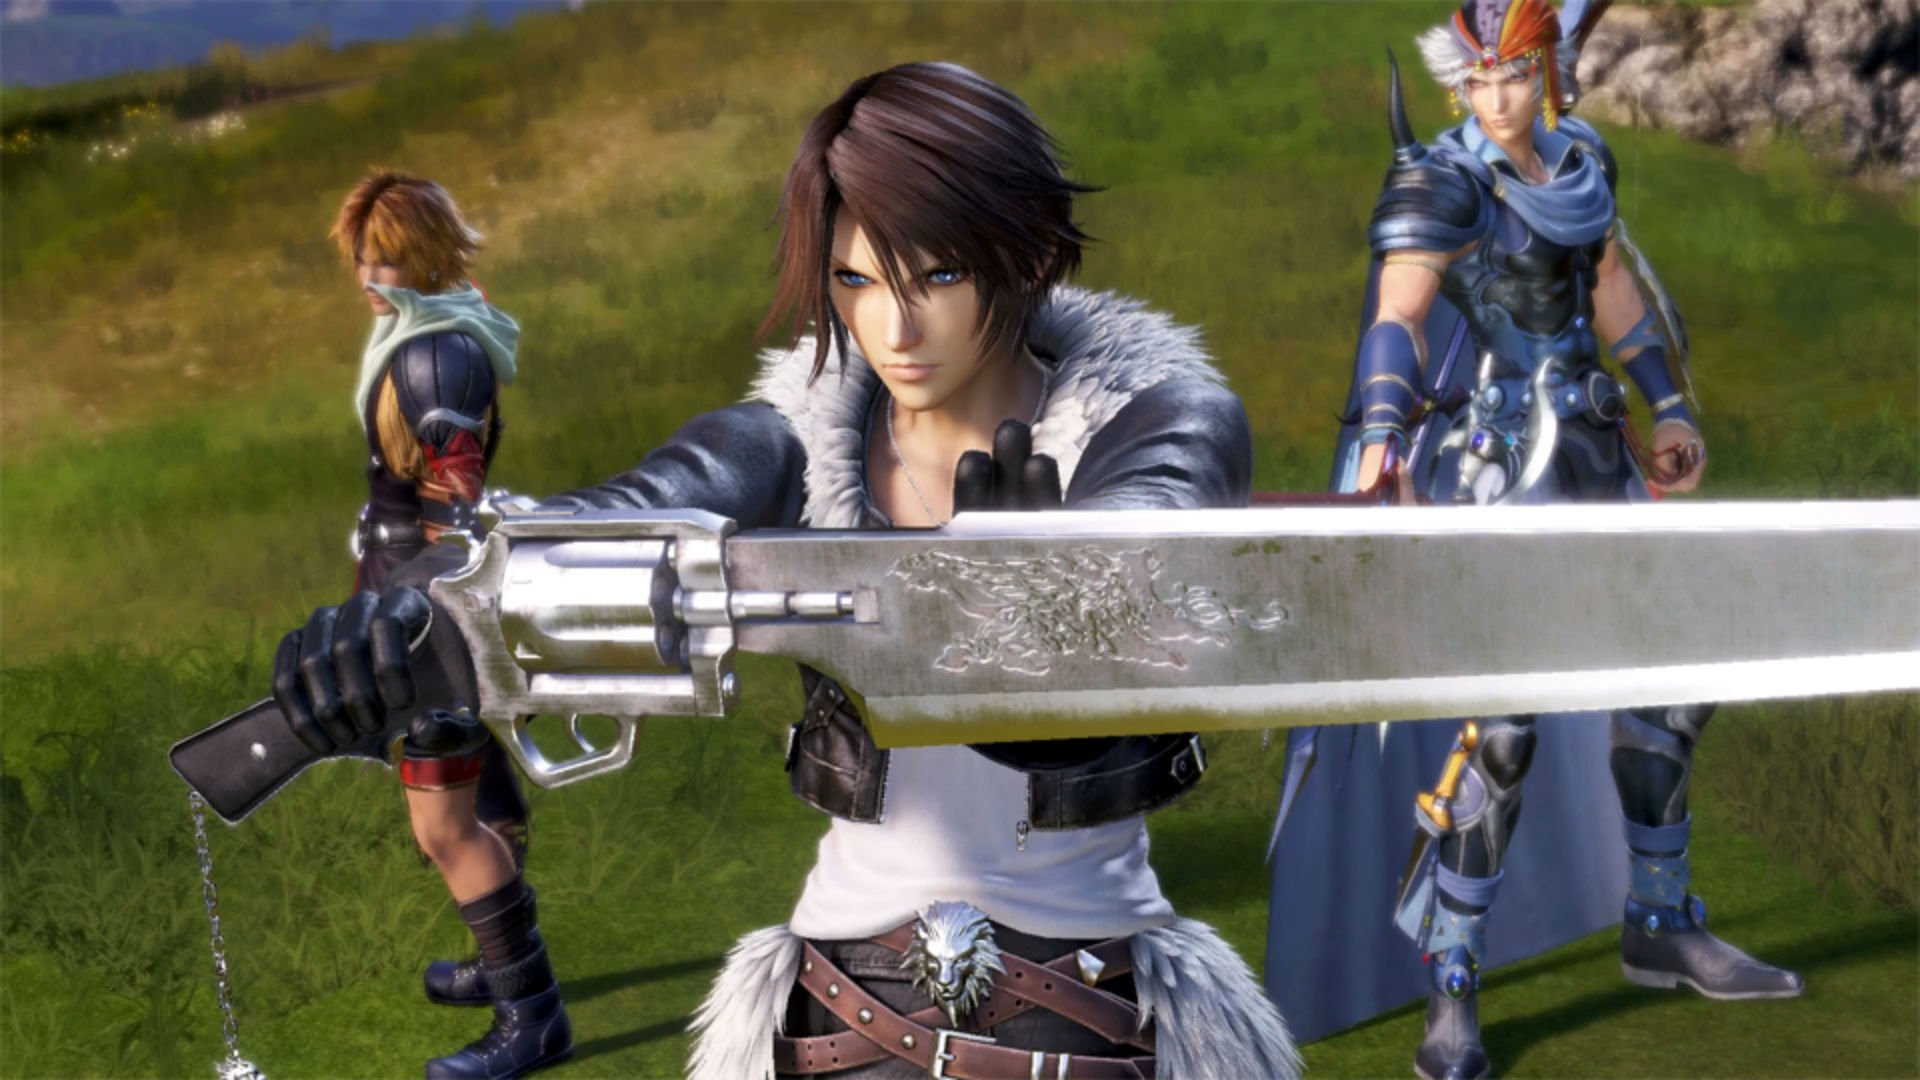 Dissidia Final Fantasy NT's gameplay looks pretty busy screenshot